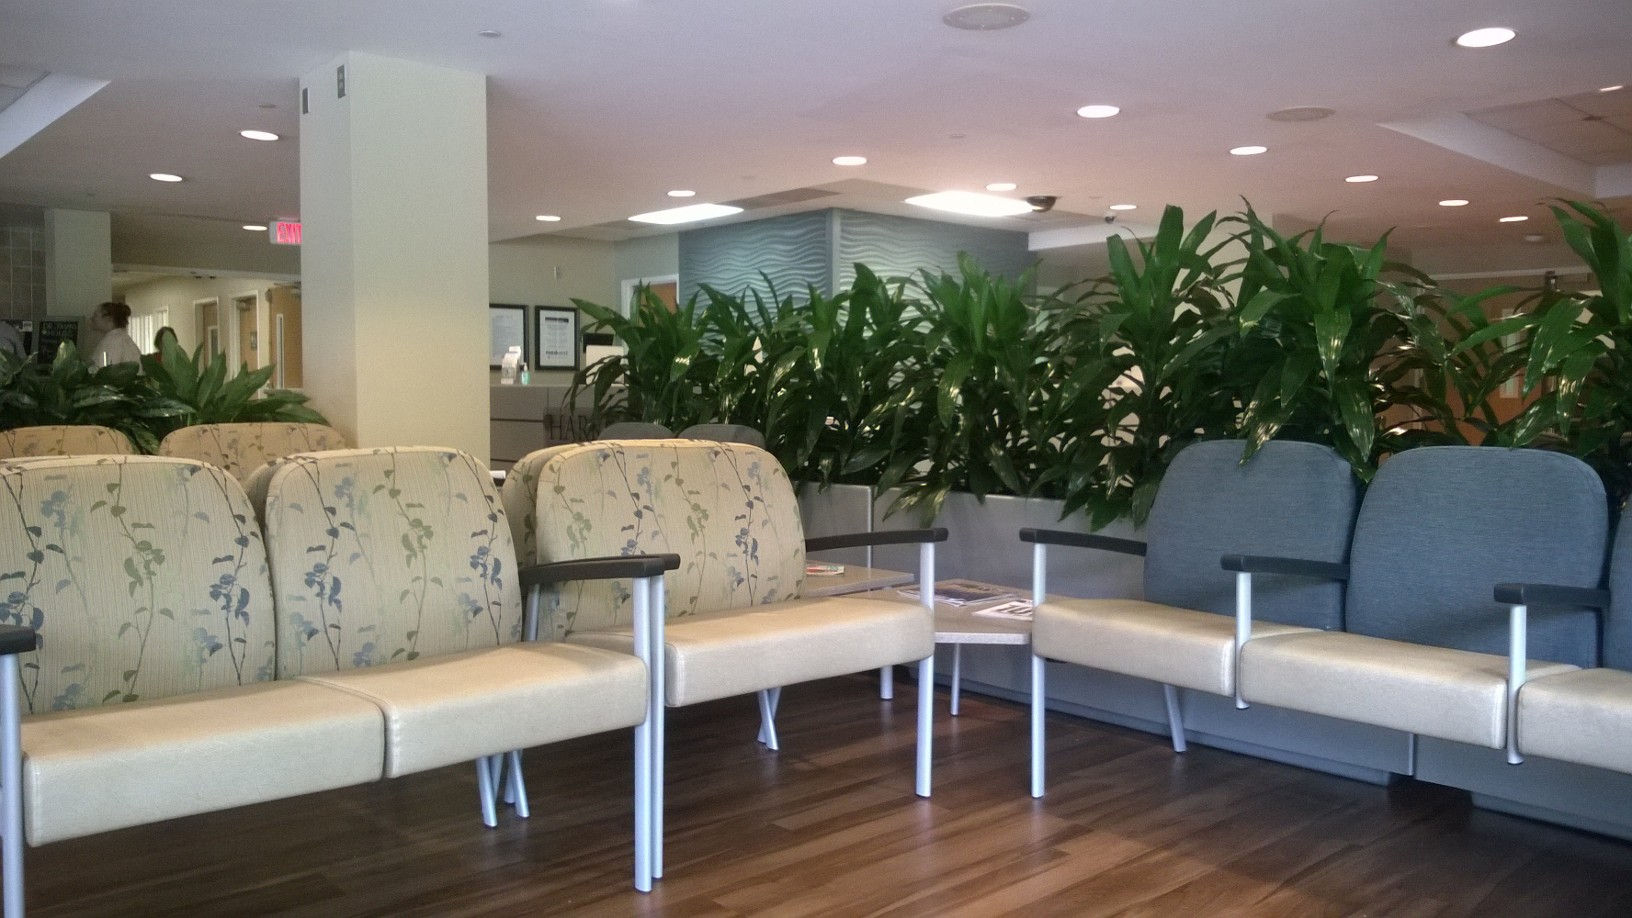 Lobby with Mohawk Group Select Step flooring, Stance Vista II with solid surface tops and Momentum Banter and CF Stinson Script fabrics. Fiberglass planters from Planter Designs, Inc. and Texture 3D wall panels.